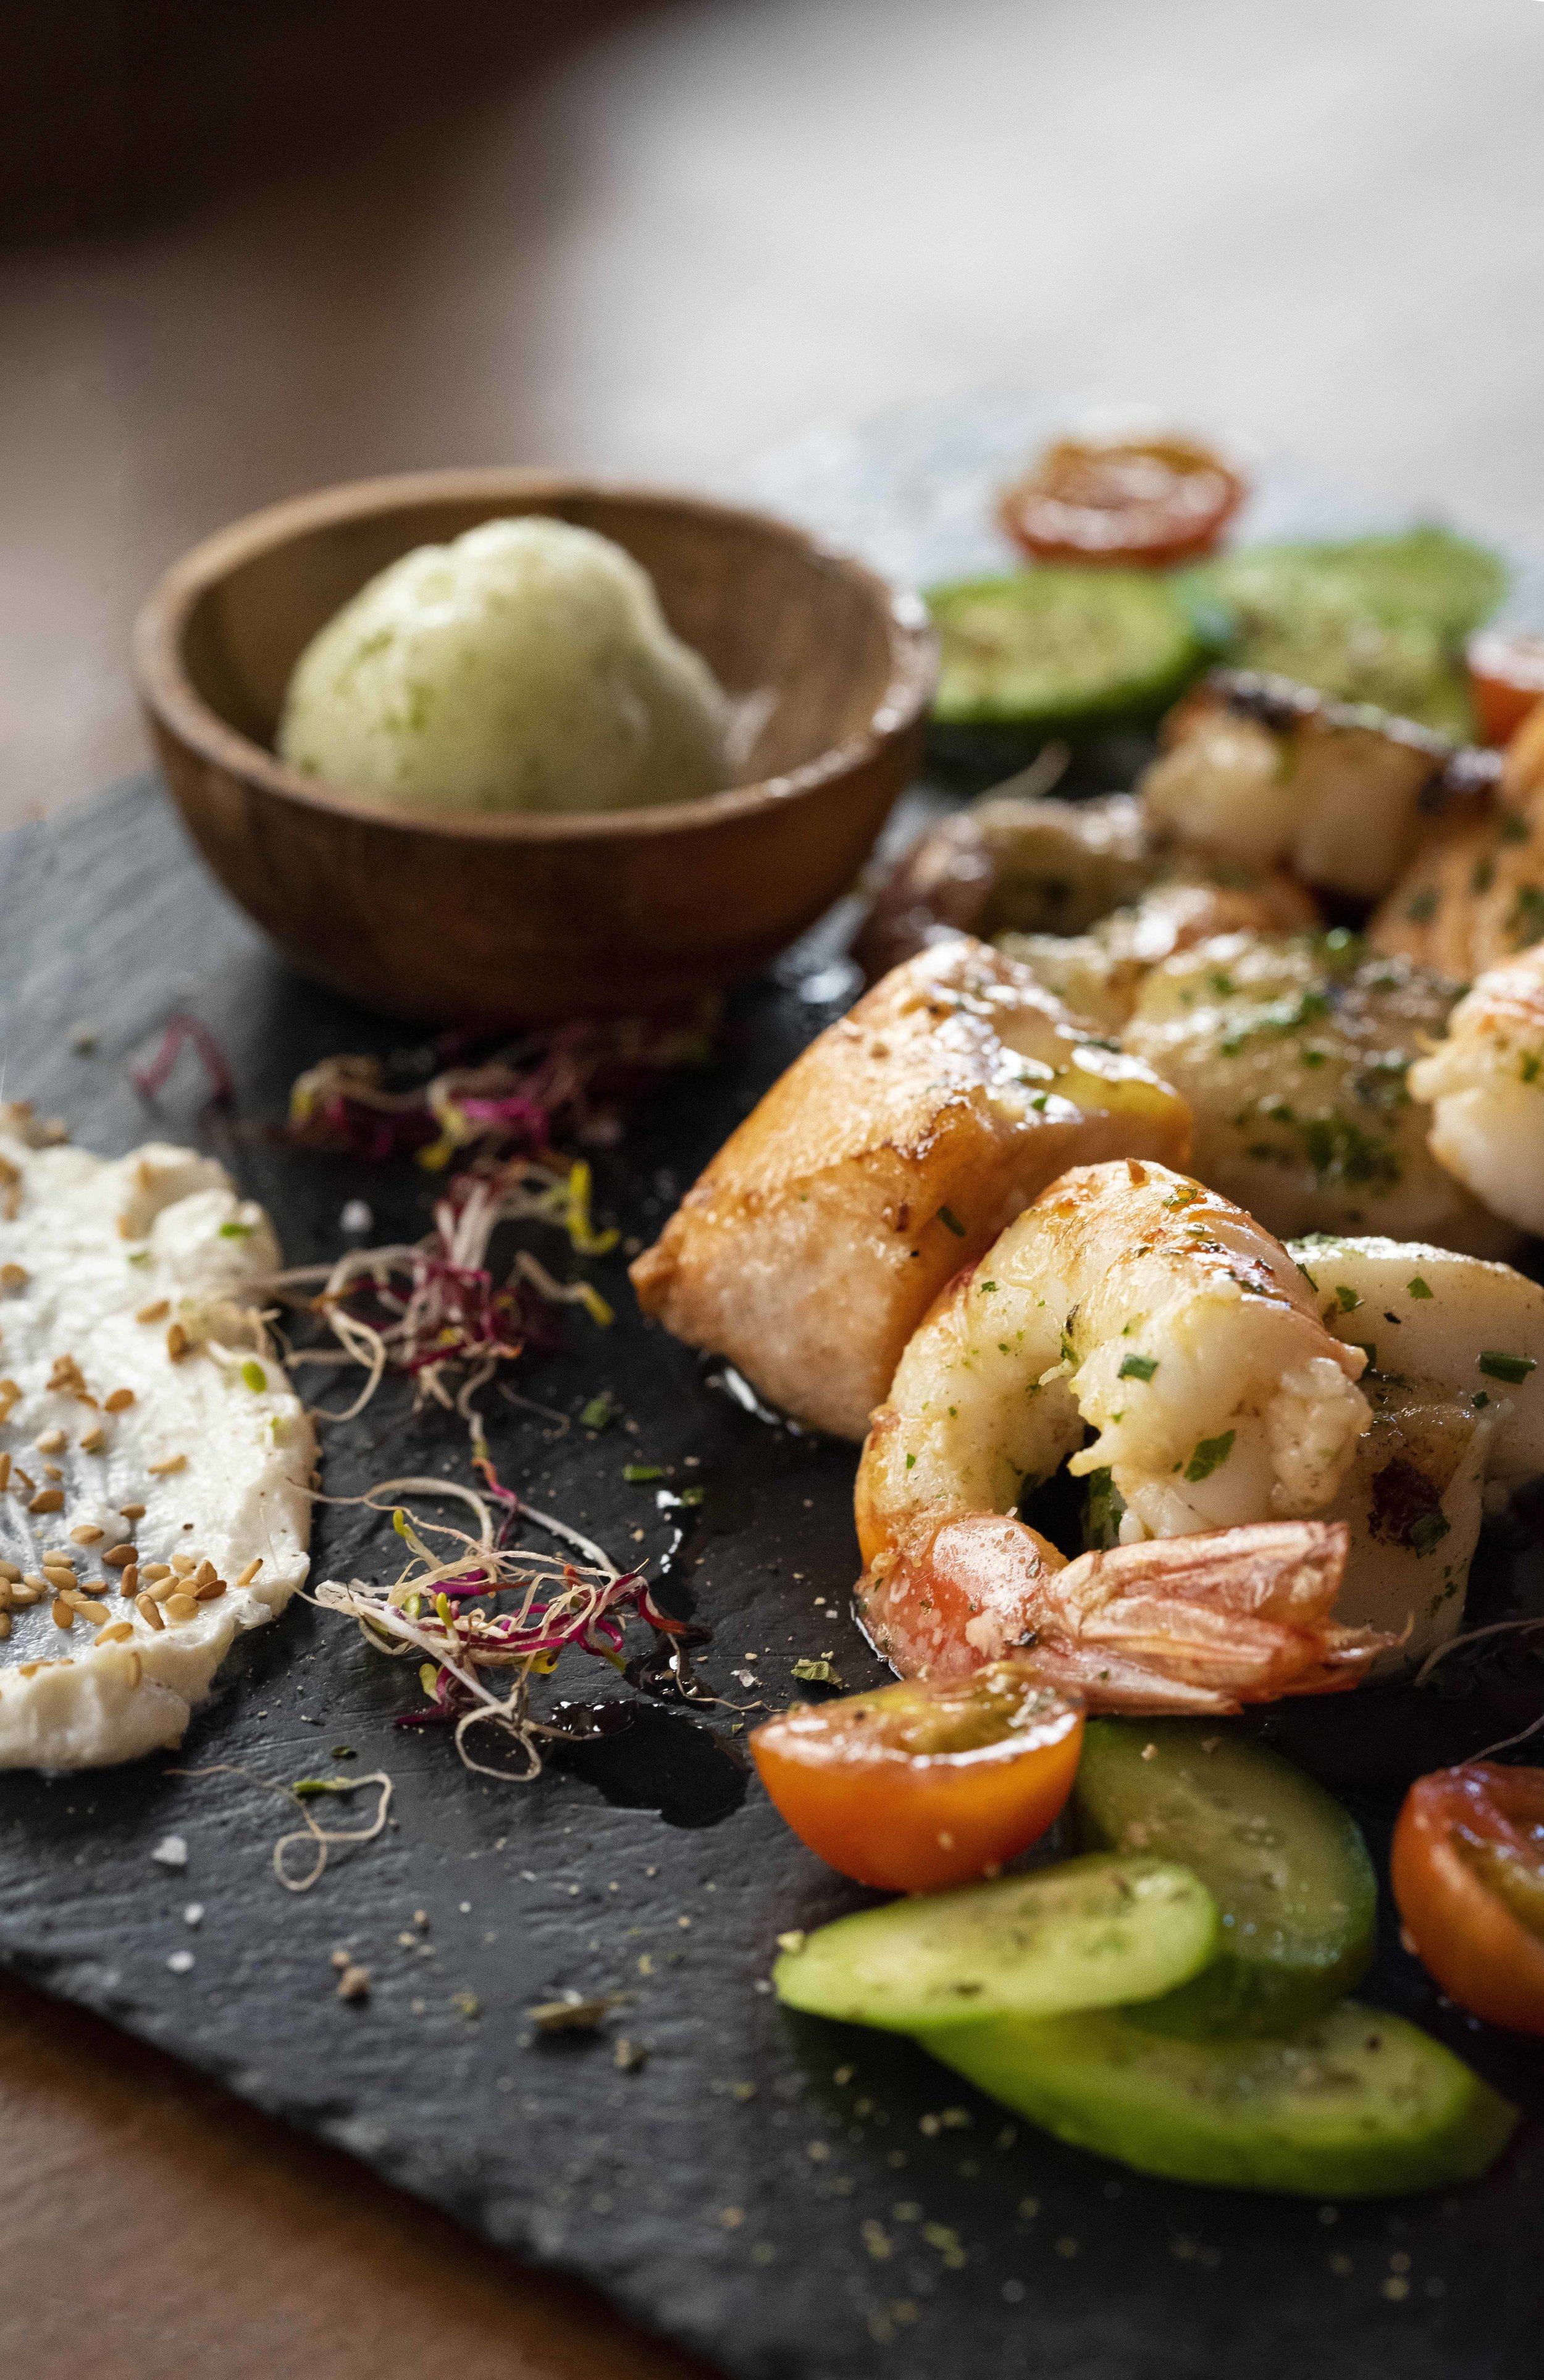 Scallops, shrimp and salmon at About.Salmon Restaurant Barcelona. Photo © Barcelona Food Experience.